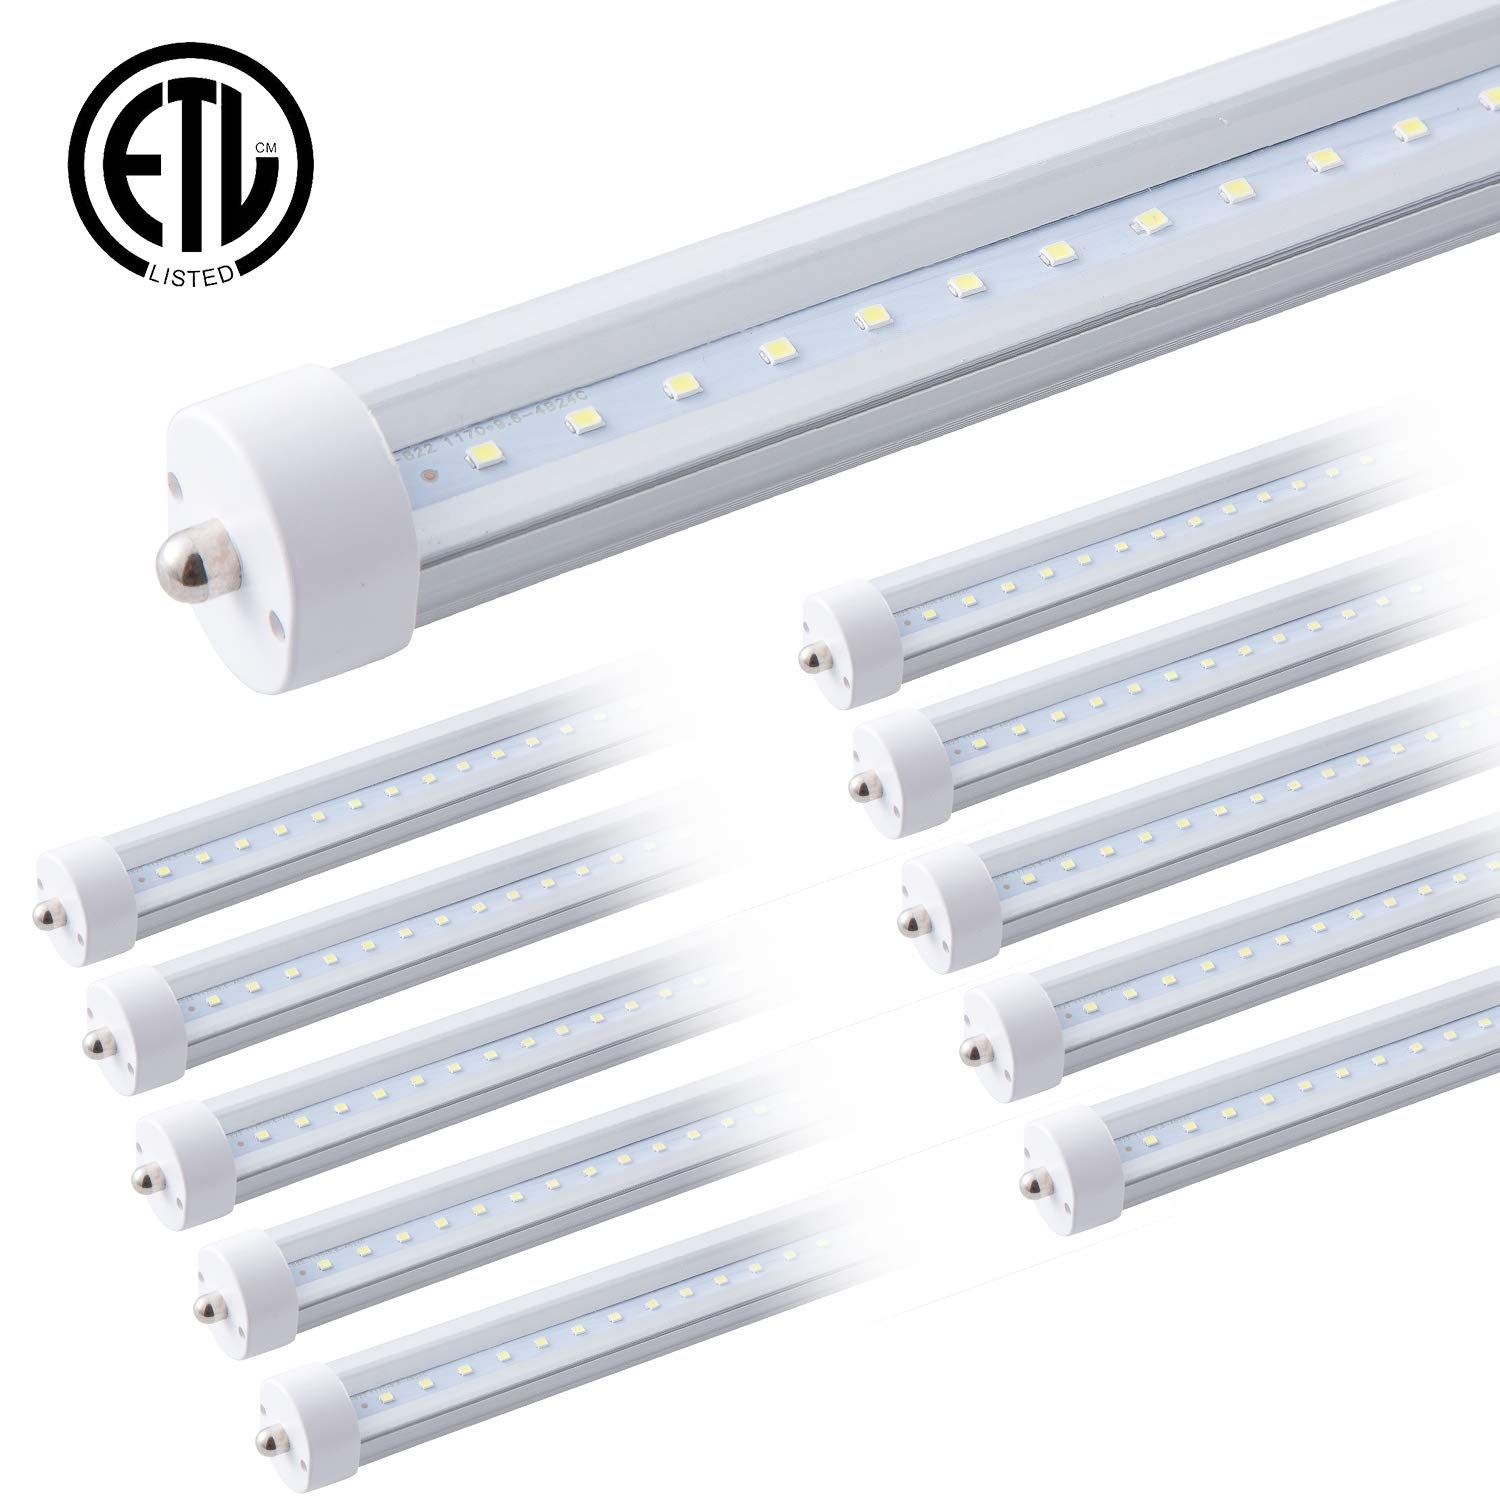 Etl T8 T12 8ft Led Tube Light F96t8 Bulb F96t12 Bulb Replacement 40w 4000lm 100w Single Pin 8 Fluorescent Equivalent 1 Led Tube Light Tube Light Led Tubes